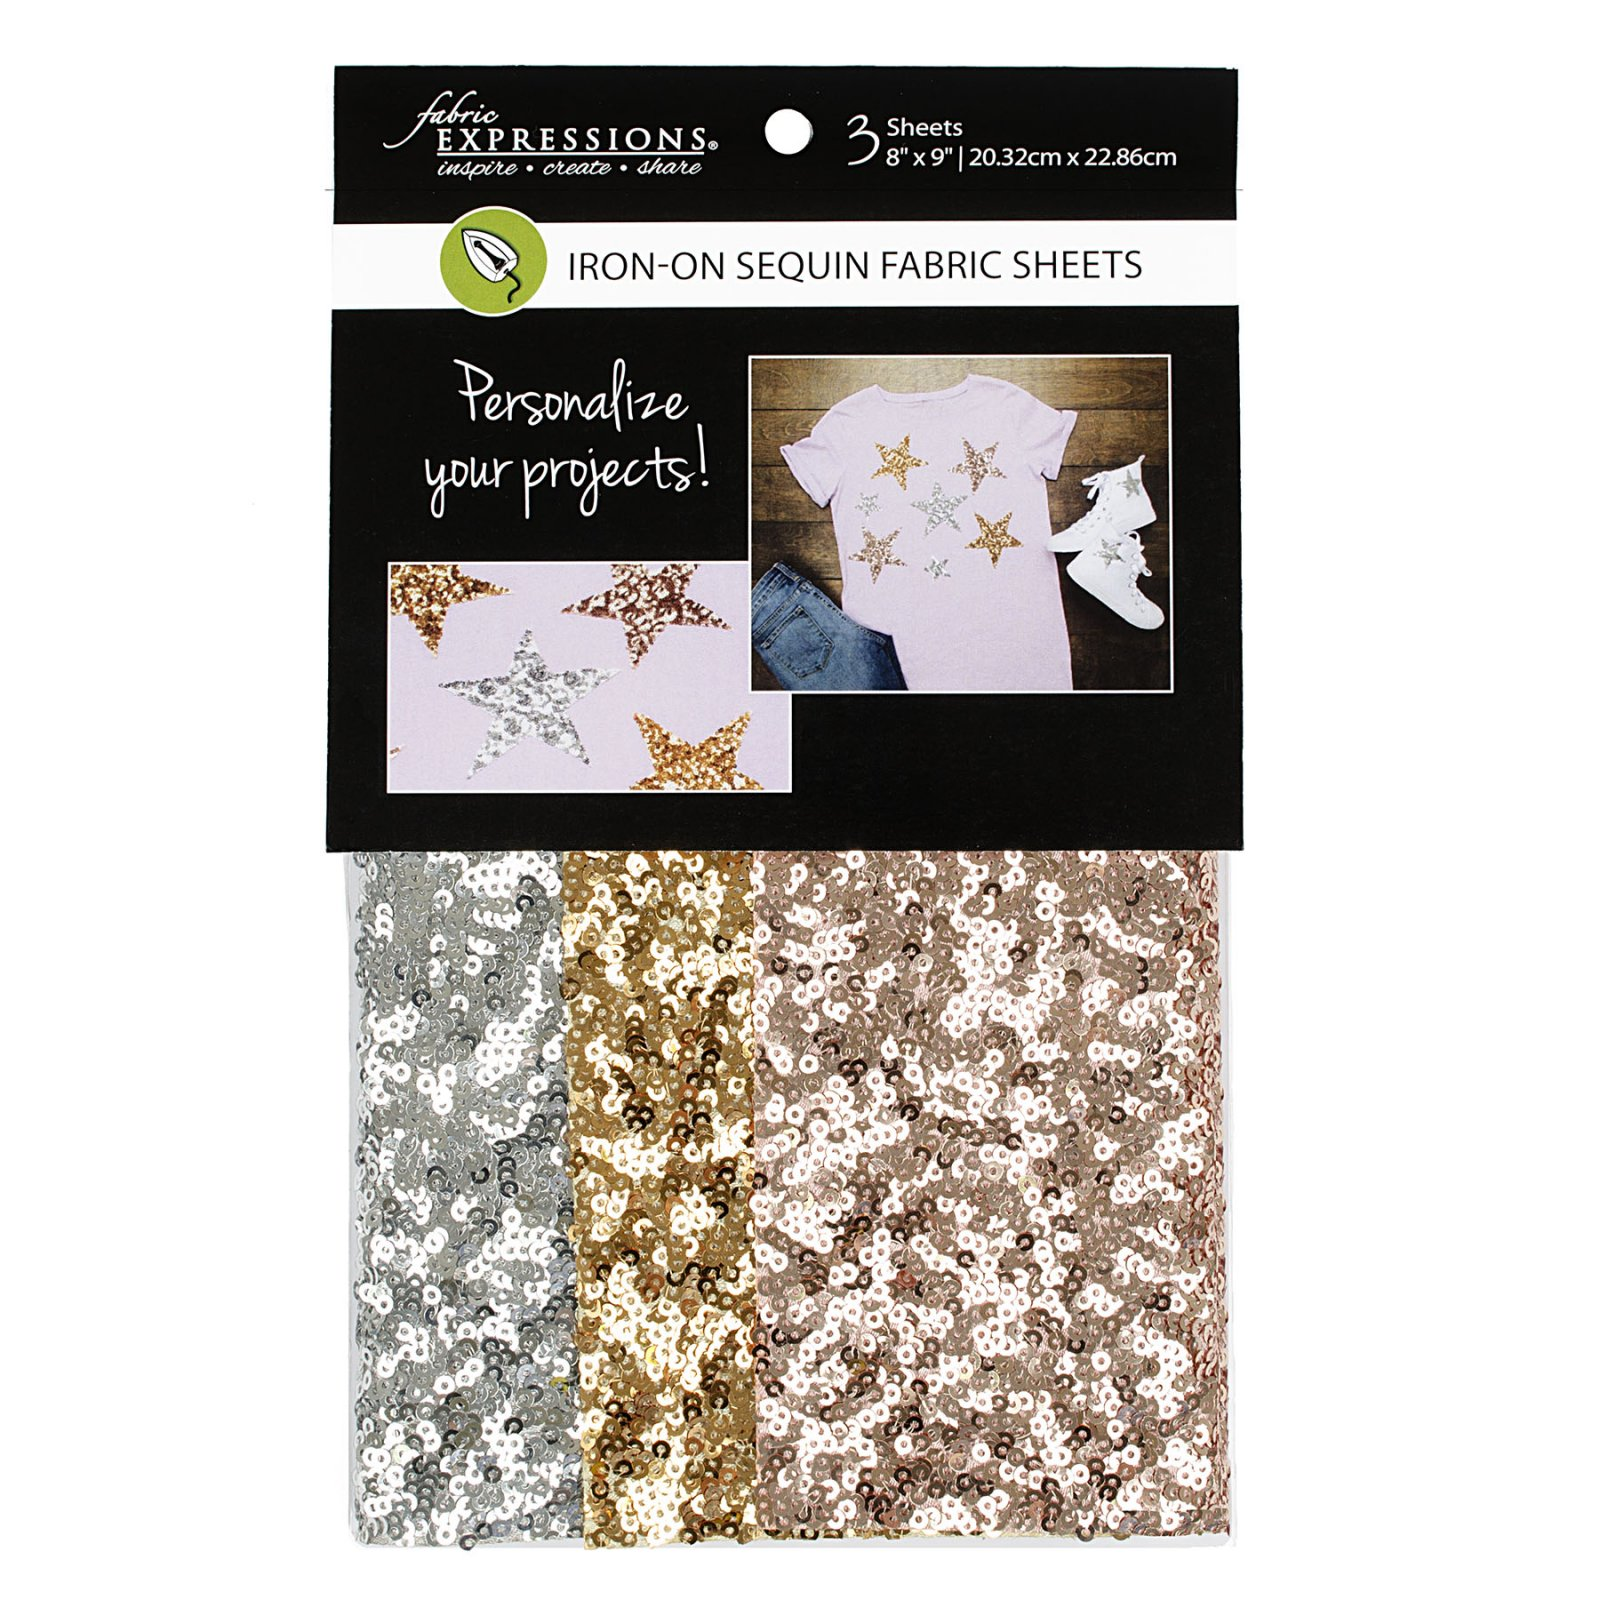 Fabric Expressions<br>6pc Iron-on Fabric Sheets - 8 x 9<br>Sequins<br>FE-FS-SP3-SEQ3PC